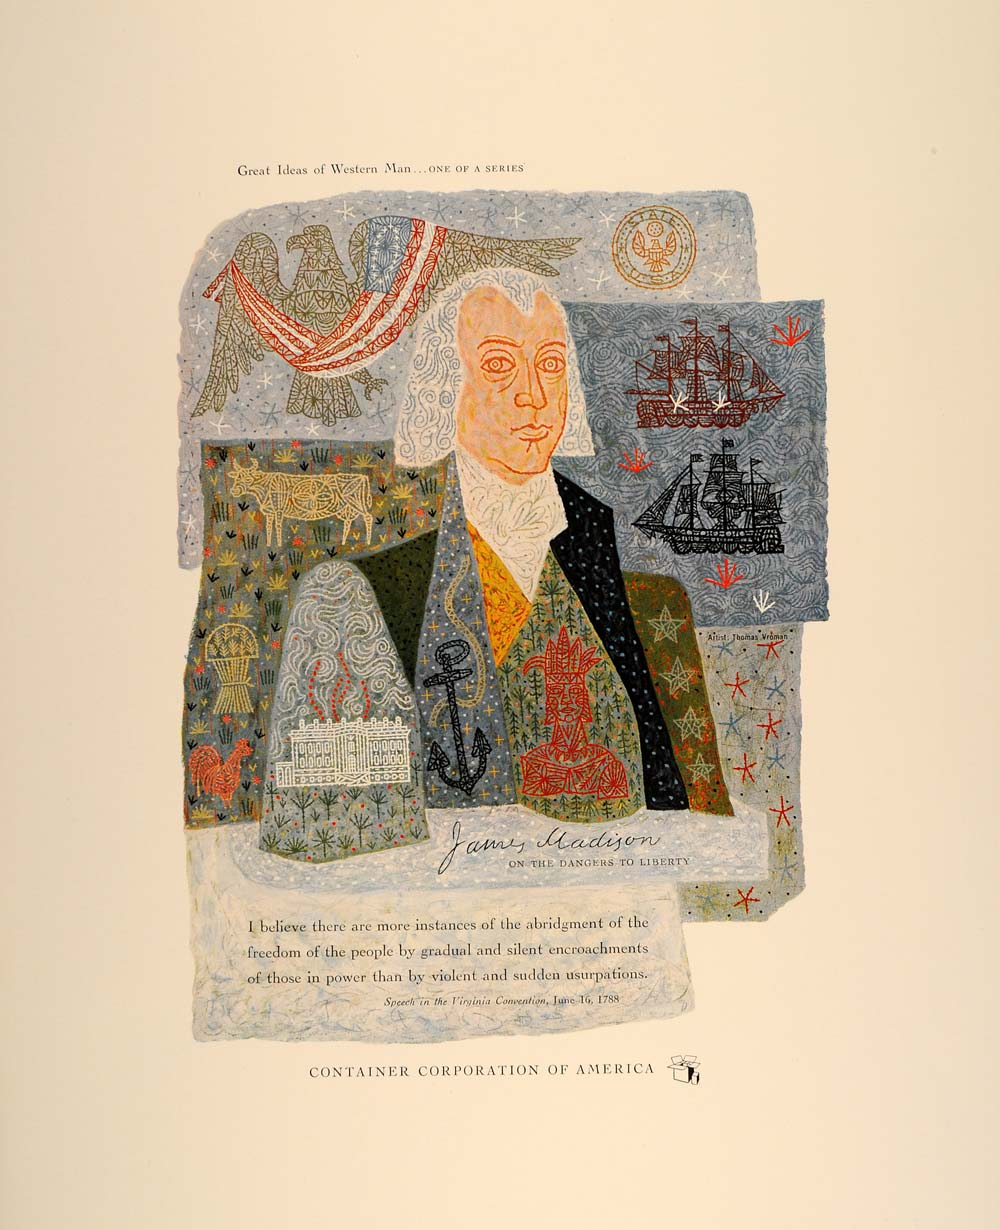 1954 CCA Art Thomas Vroman James Madison Speech Print - ORIGINAL CCA1